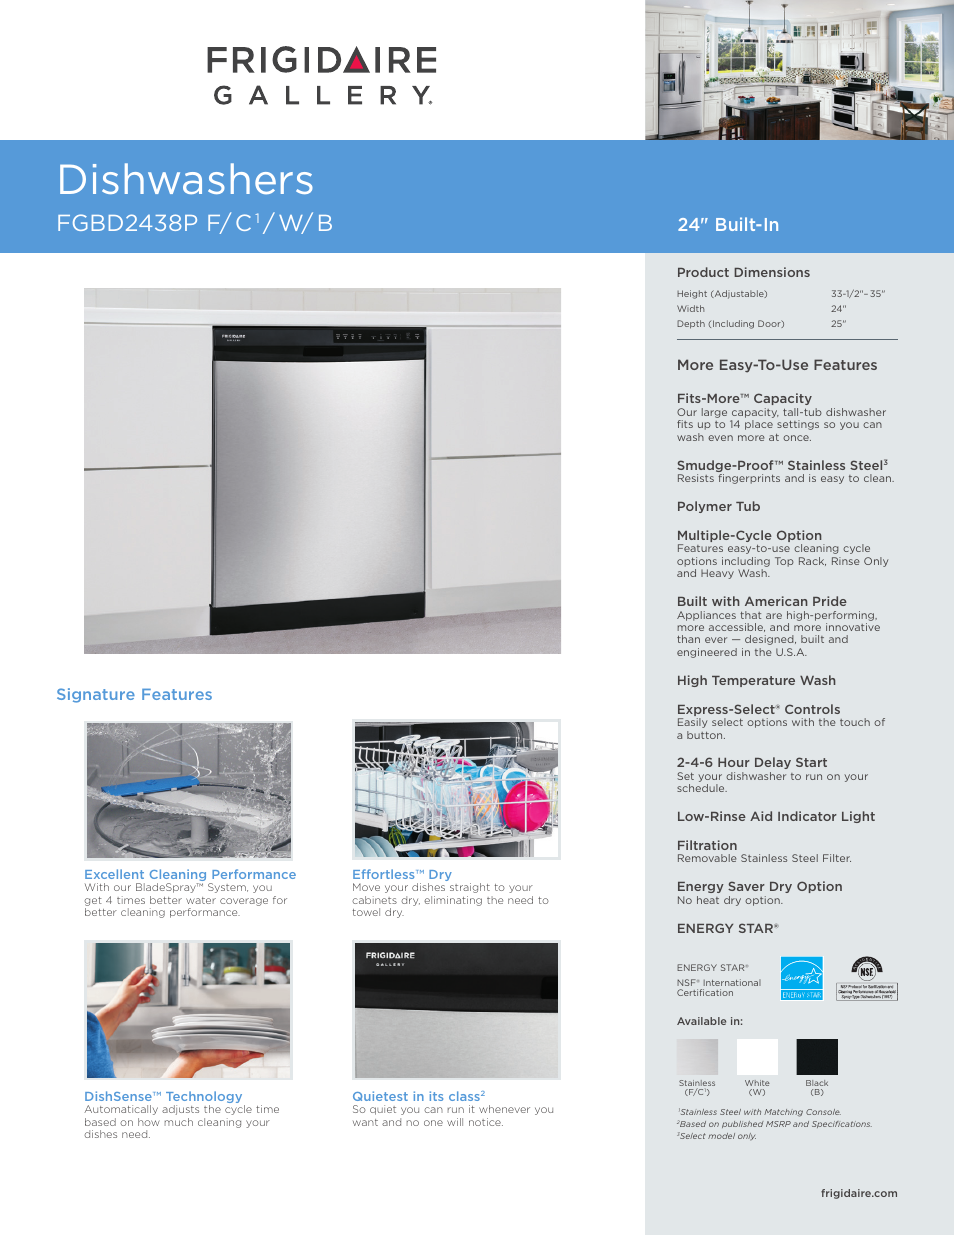 FRIGIDAIRE FGBD2438PB User Manual | 7 pages | Also for: FGBD2438PW,  FGBD2438PF